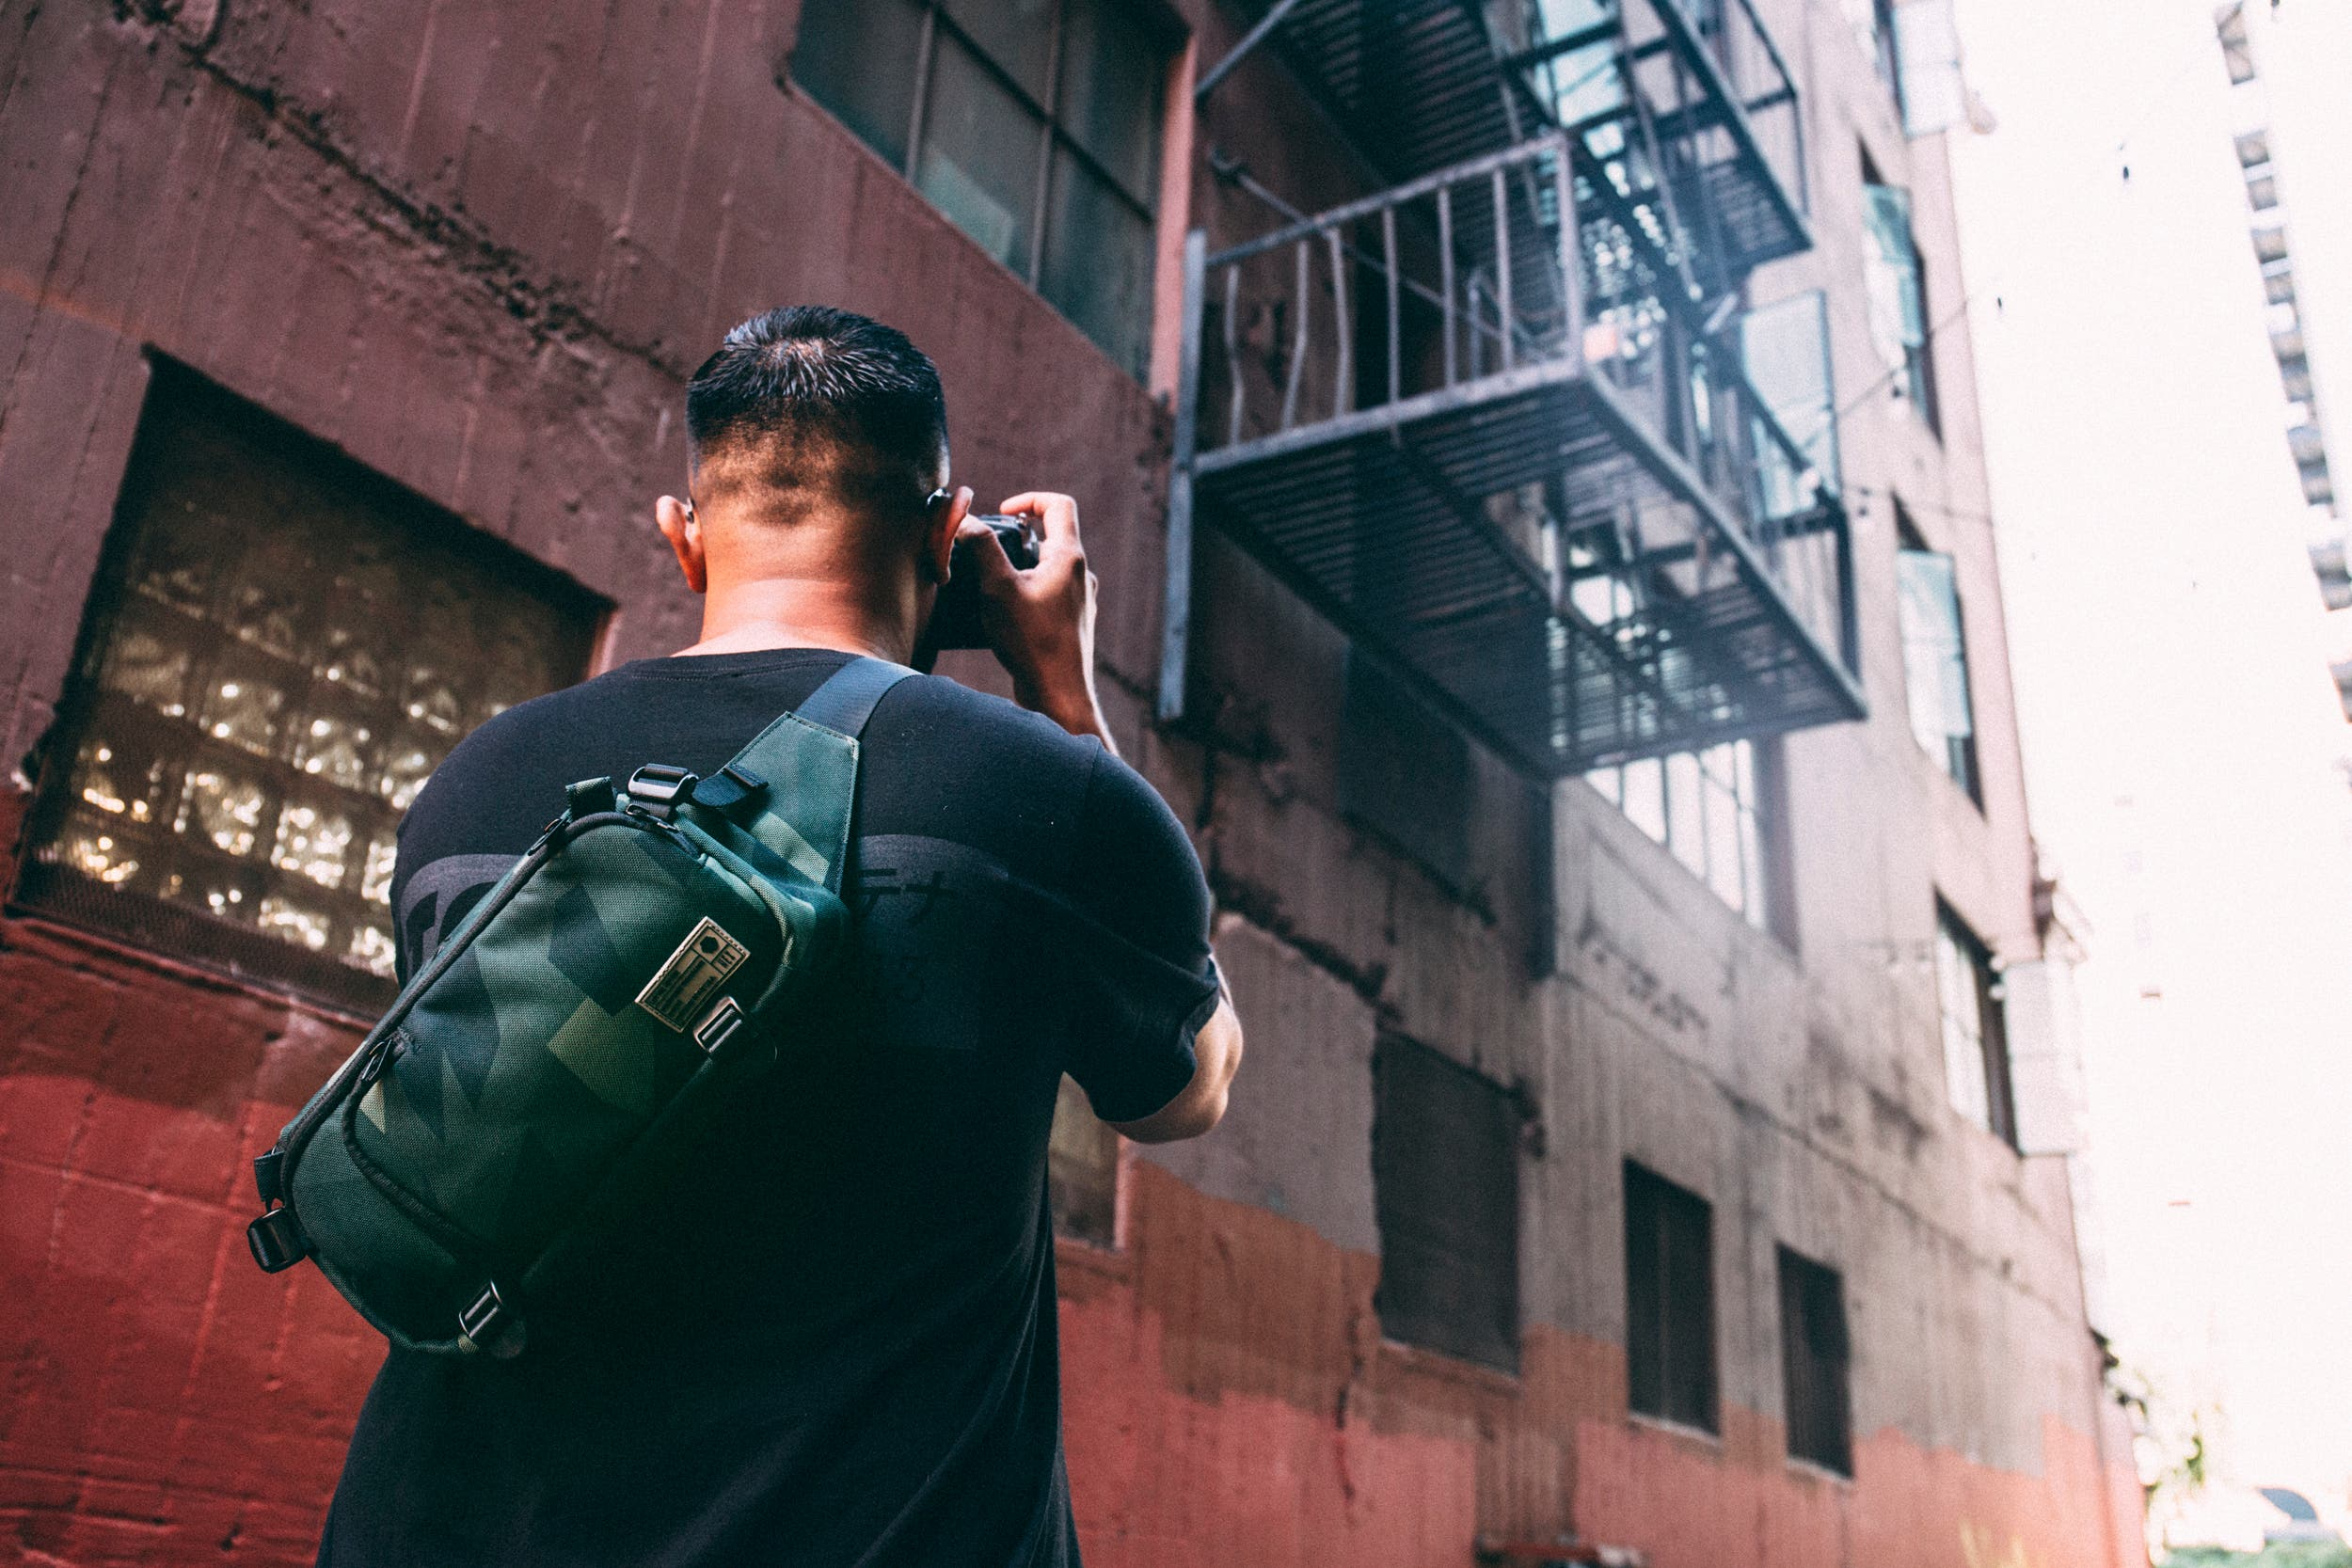 Hex Drops New Mini DSLR Sling Bag for On-the-Go Shooters